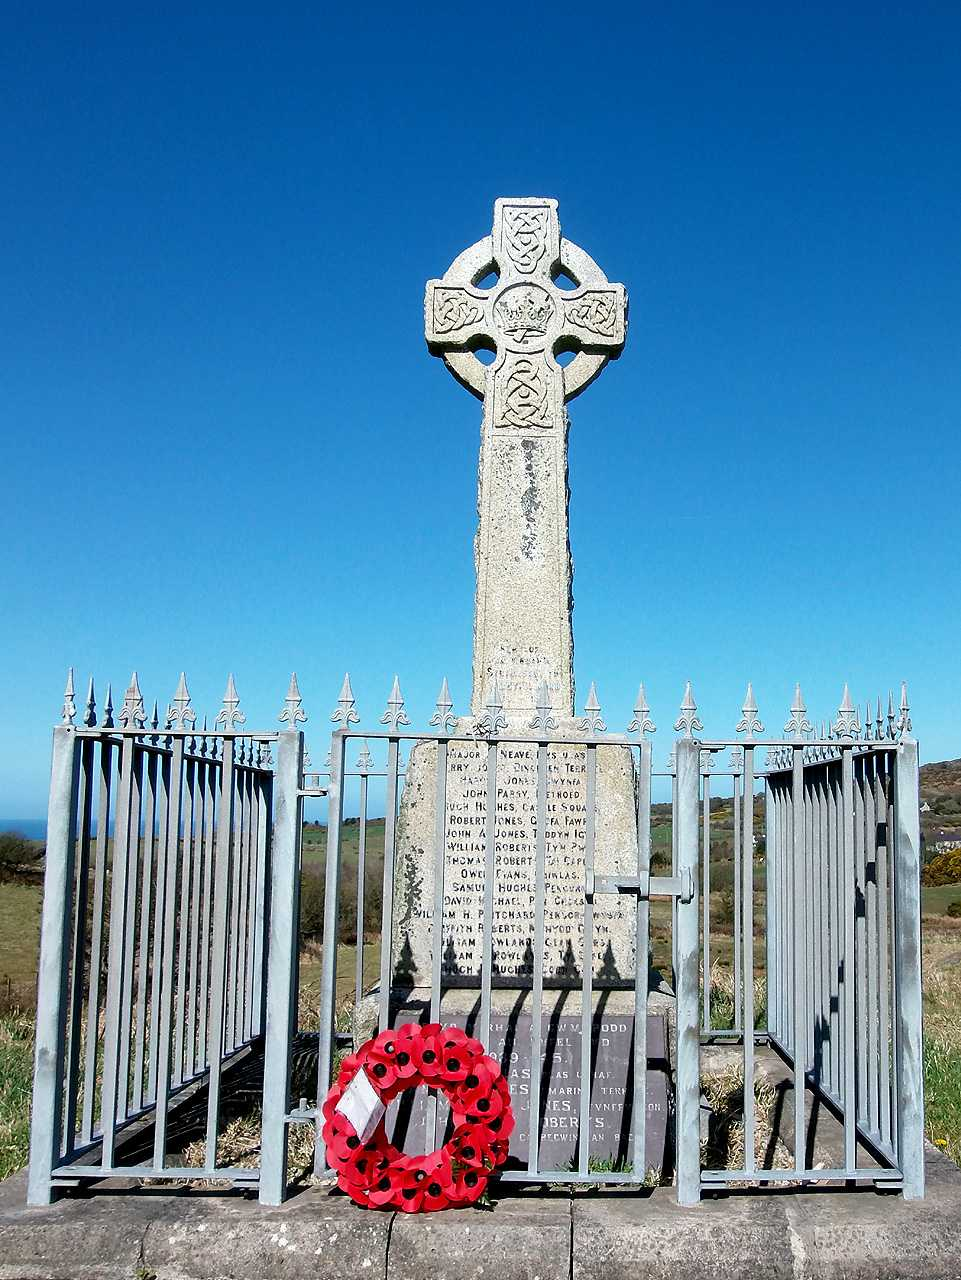 Anglesey, Penysarn War Memorial and Railings